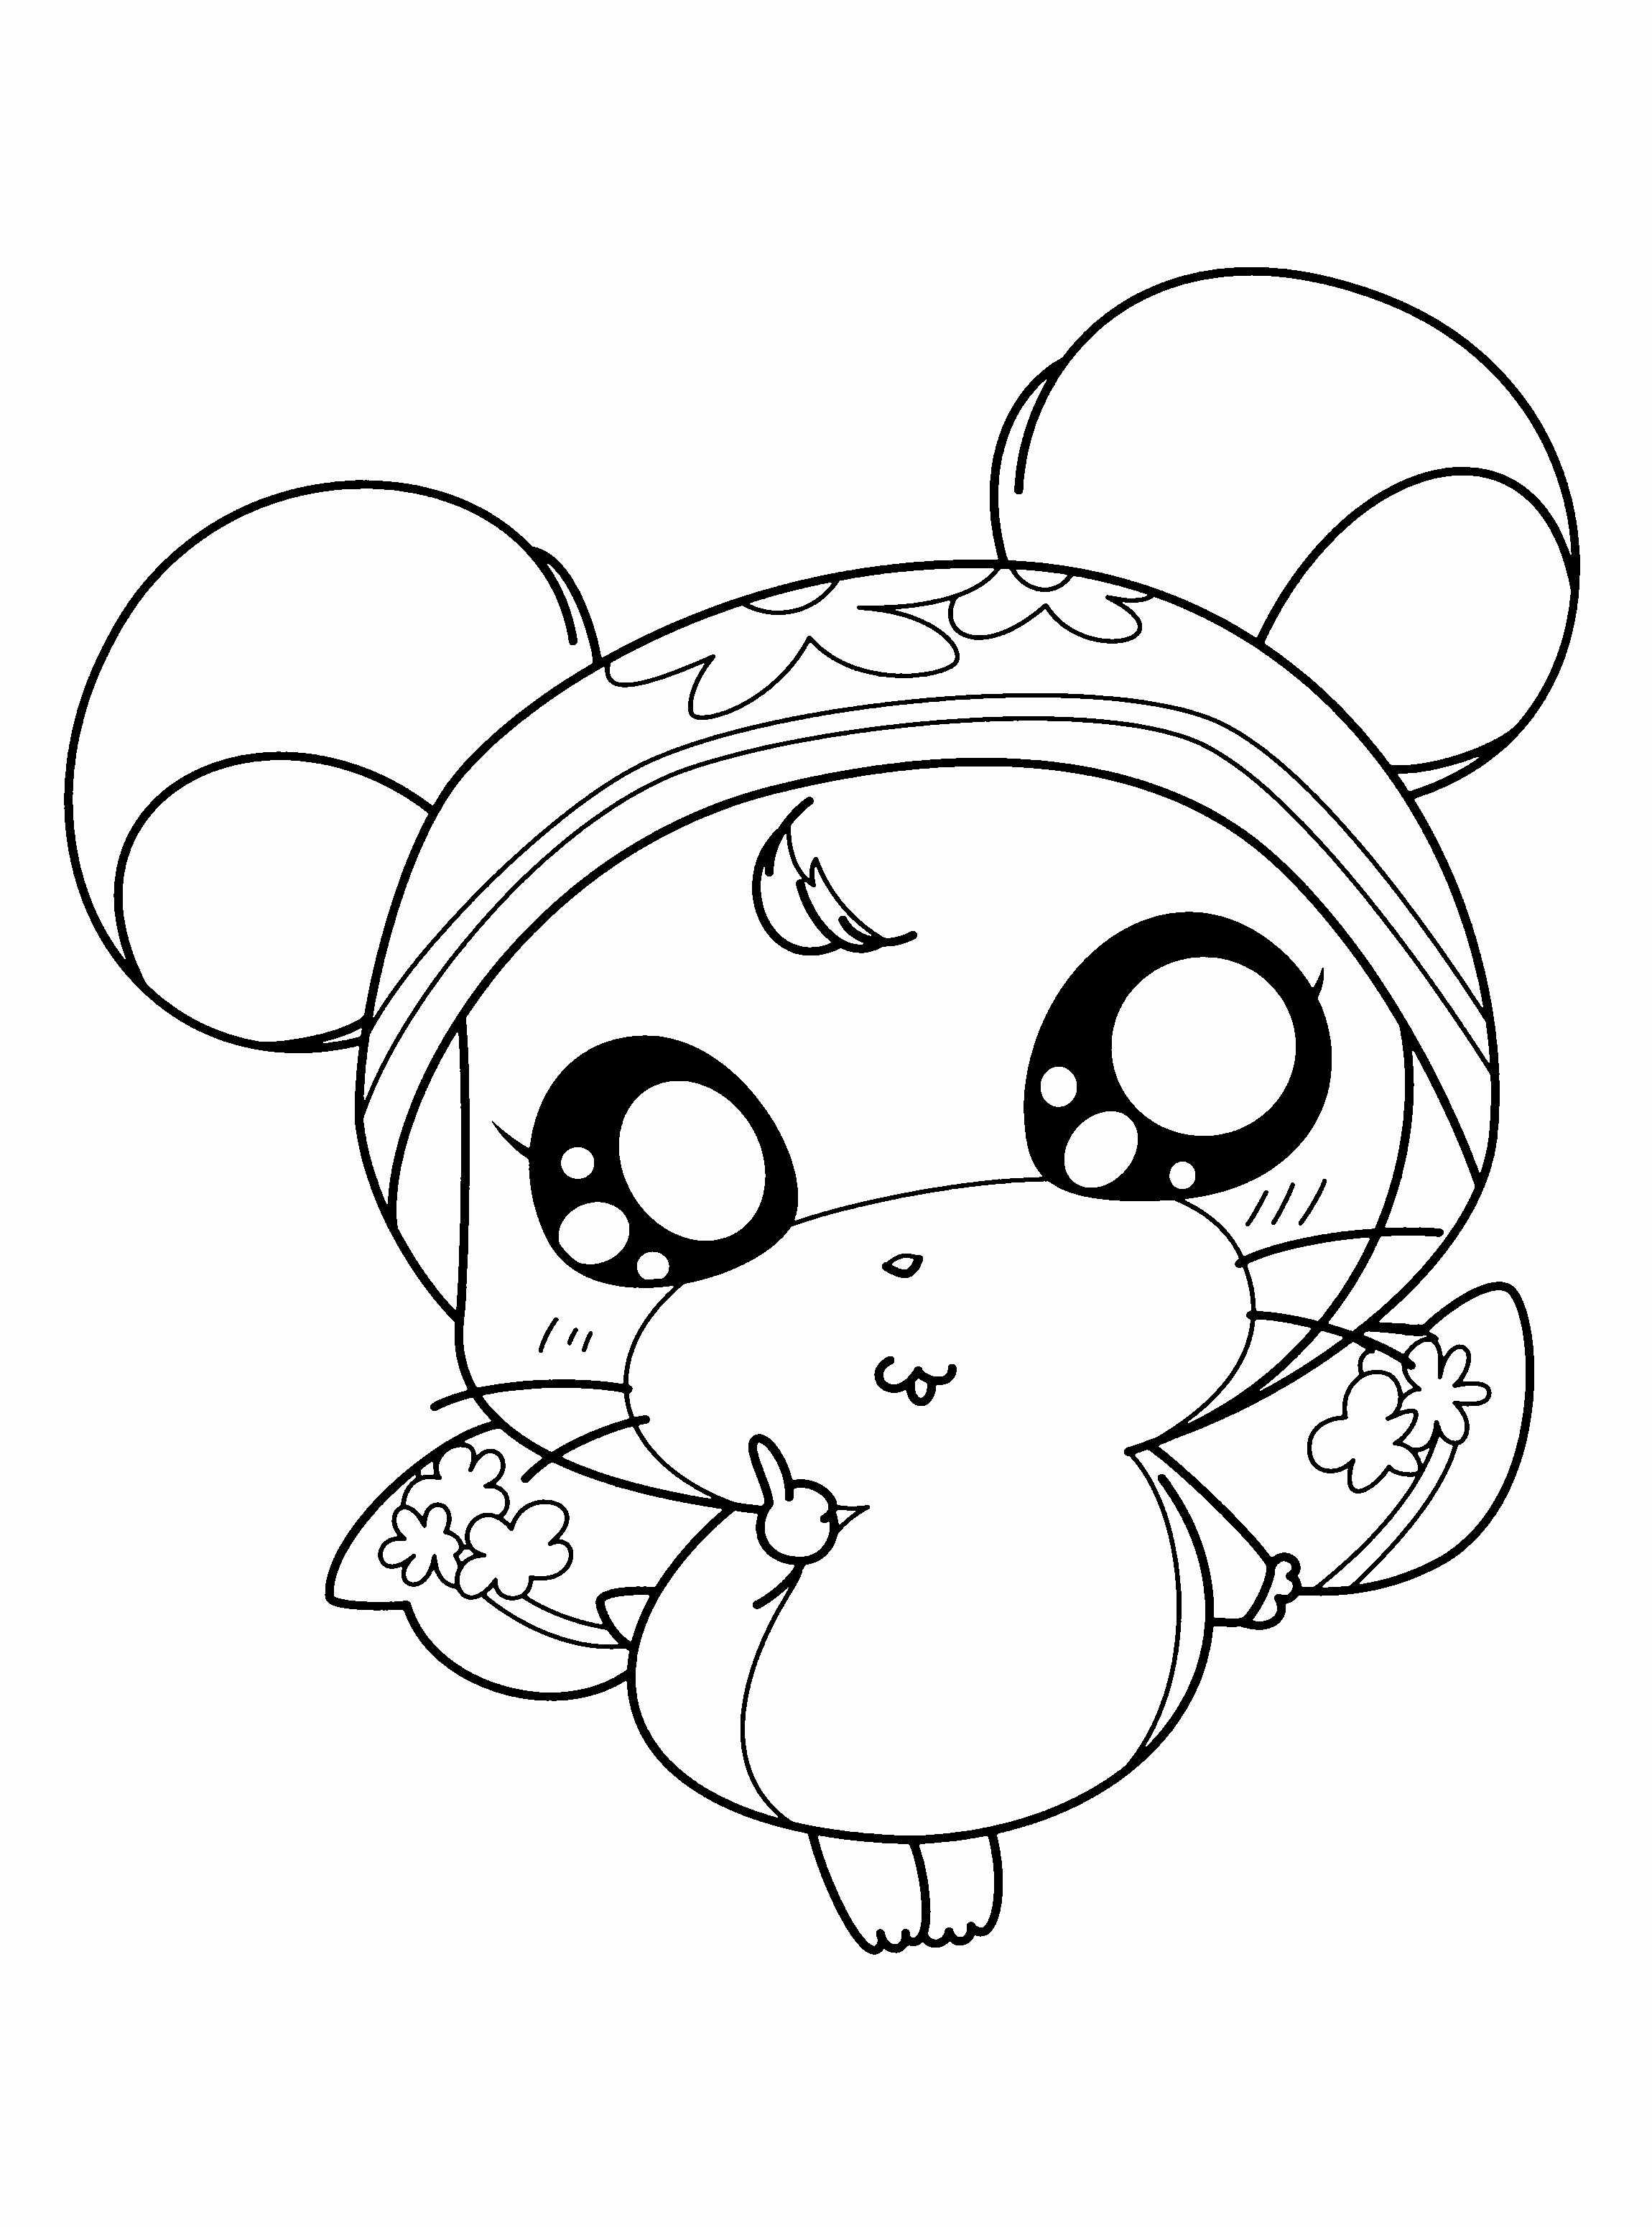 make your own coloring pages online for free Collection-Coloring Pages Bookmarks Elegant Coloring Pages for Girls Lovely Printable Cds 0d – Fun Time 5-i